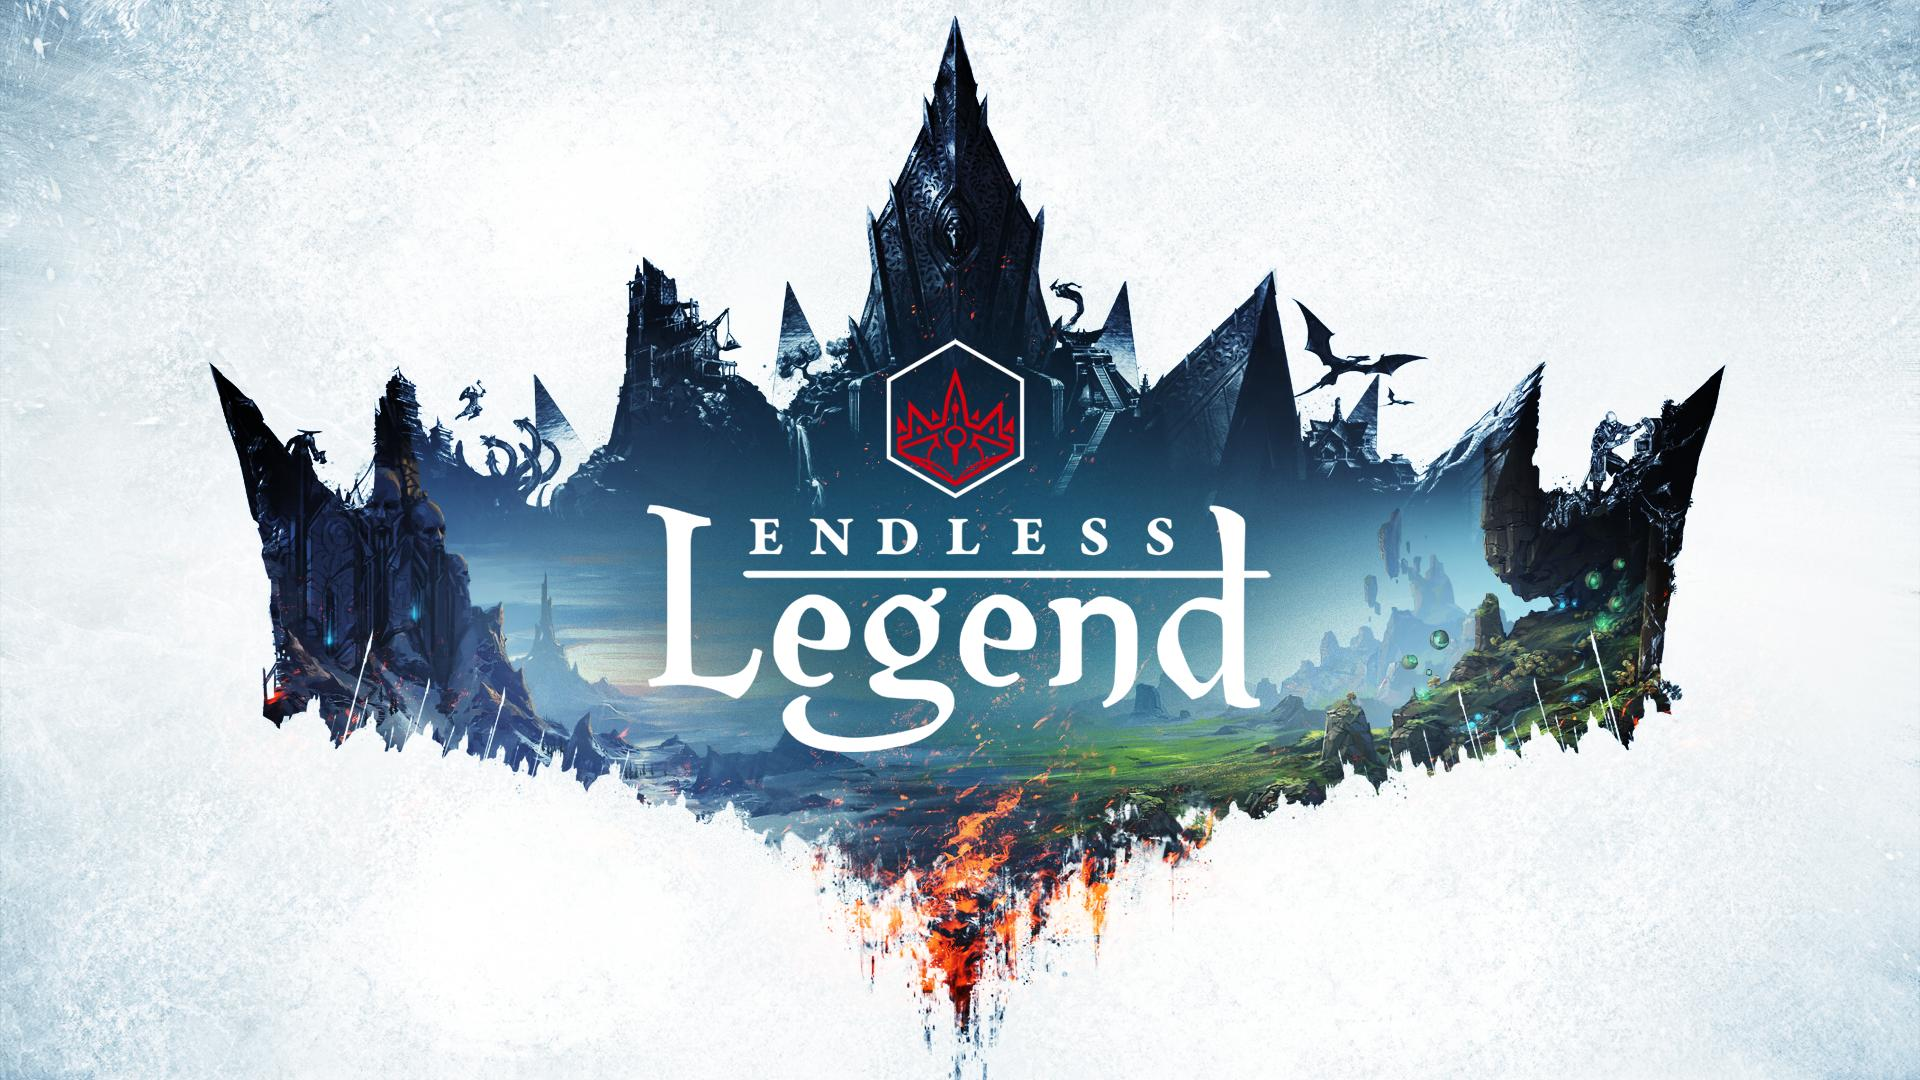 Endless Legend - Classic Pack [Steam Key] (Region Free)